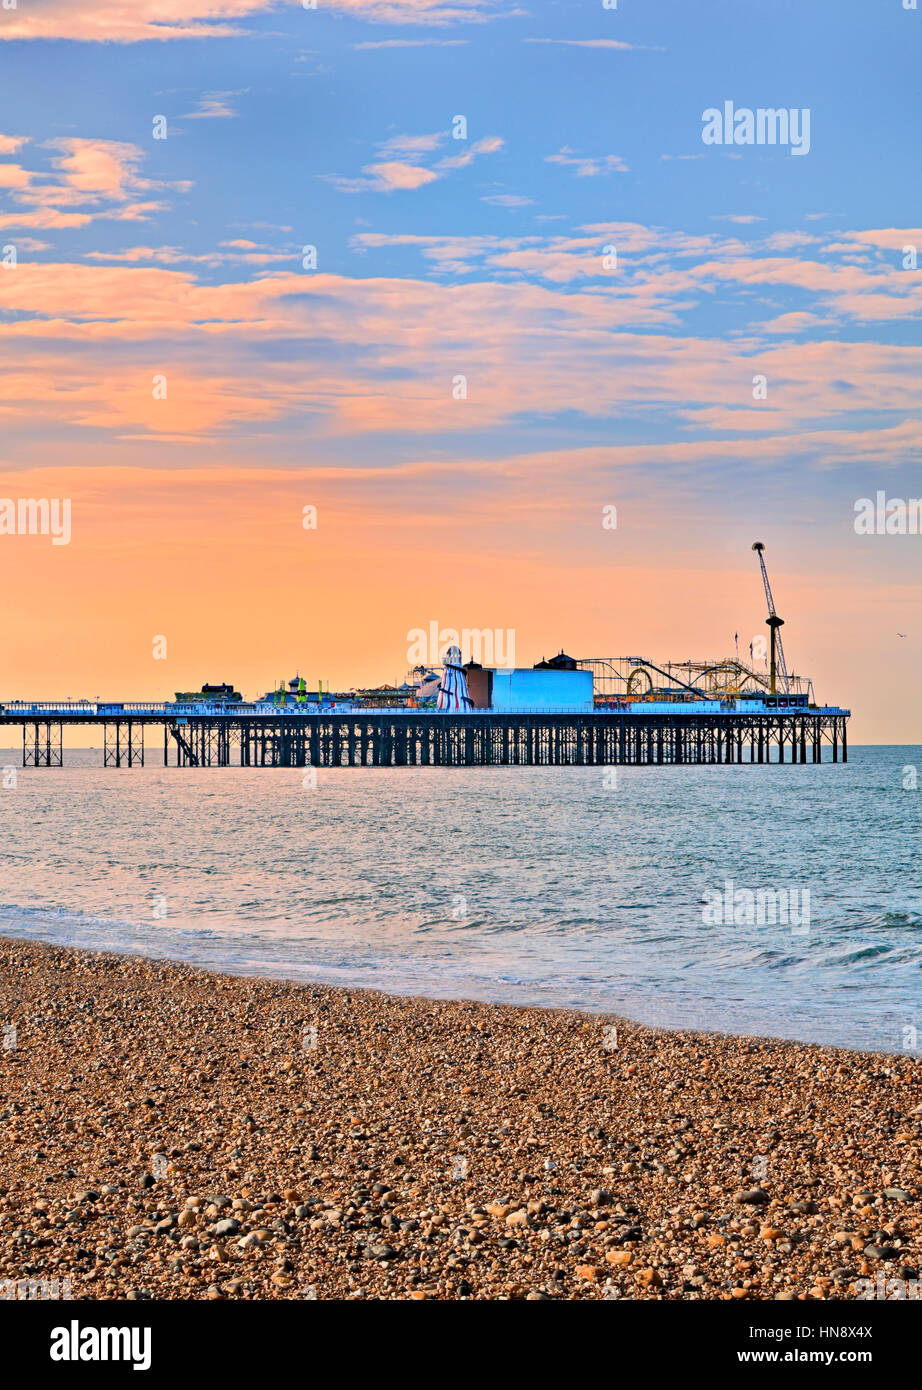 brighton pier in sunset - Stock Image